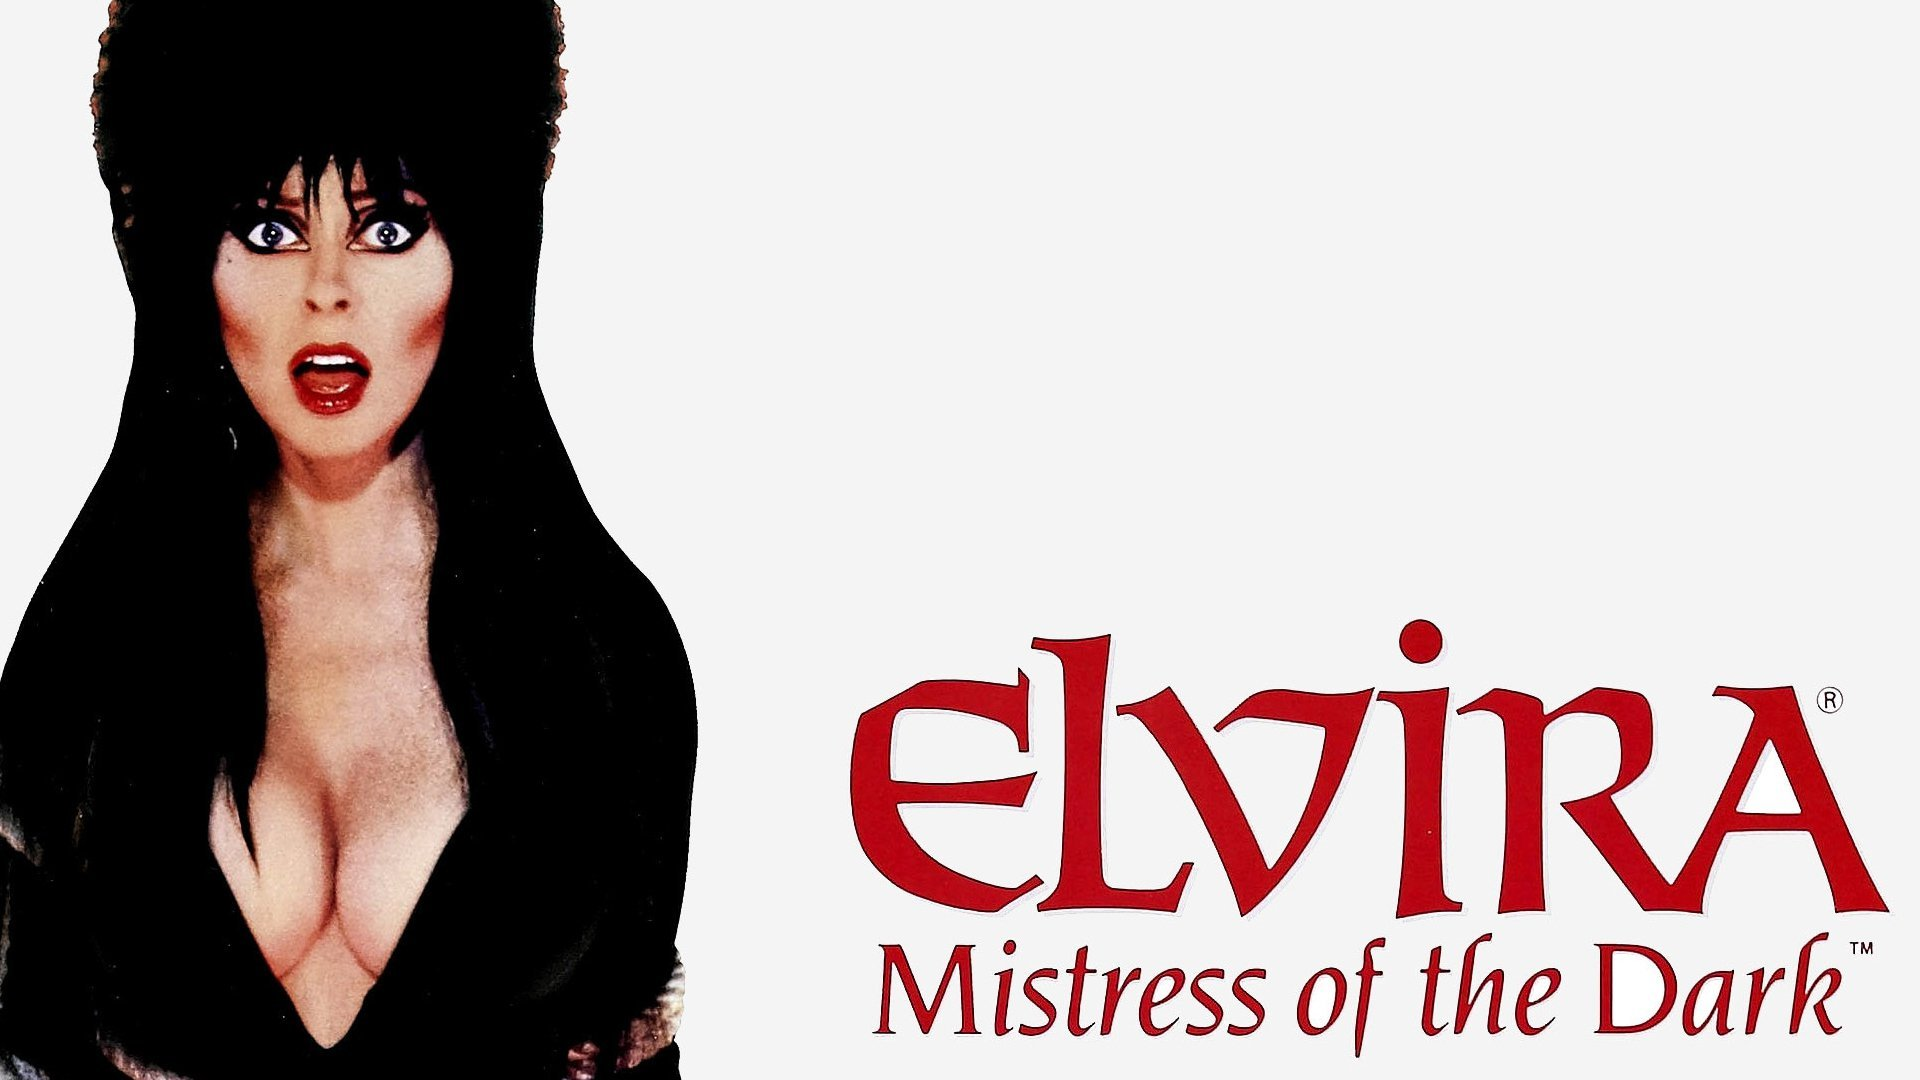 Elvira Mistress of the Dark posters wallpapers trailers Prime 1920x1080